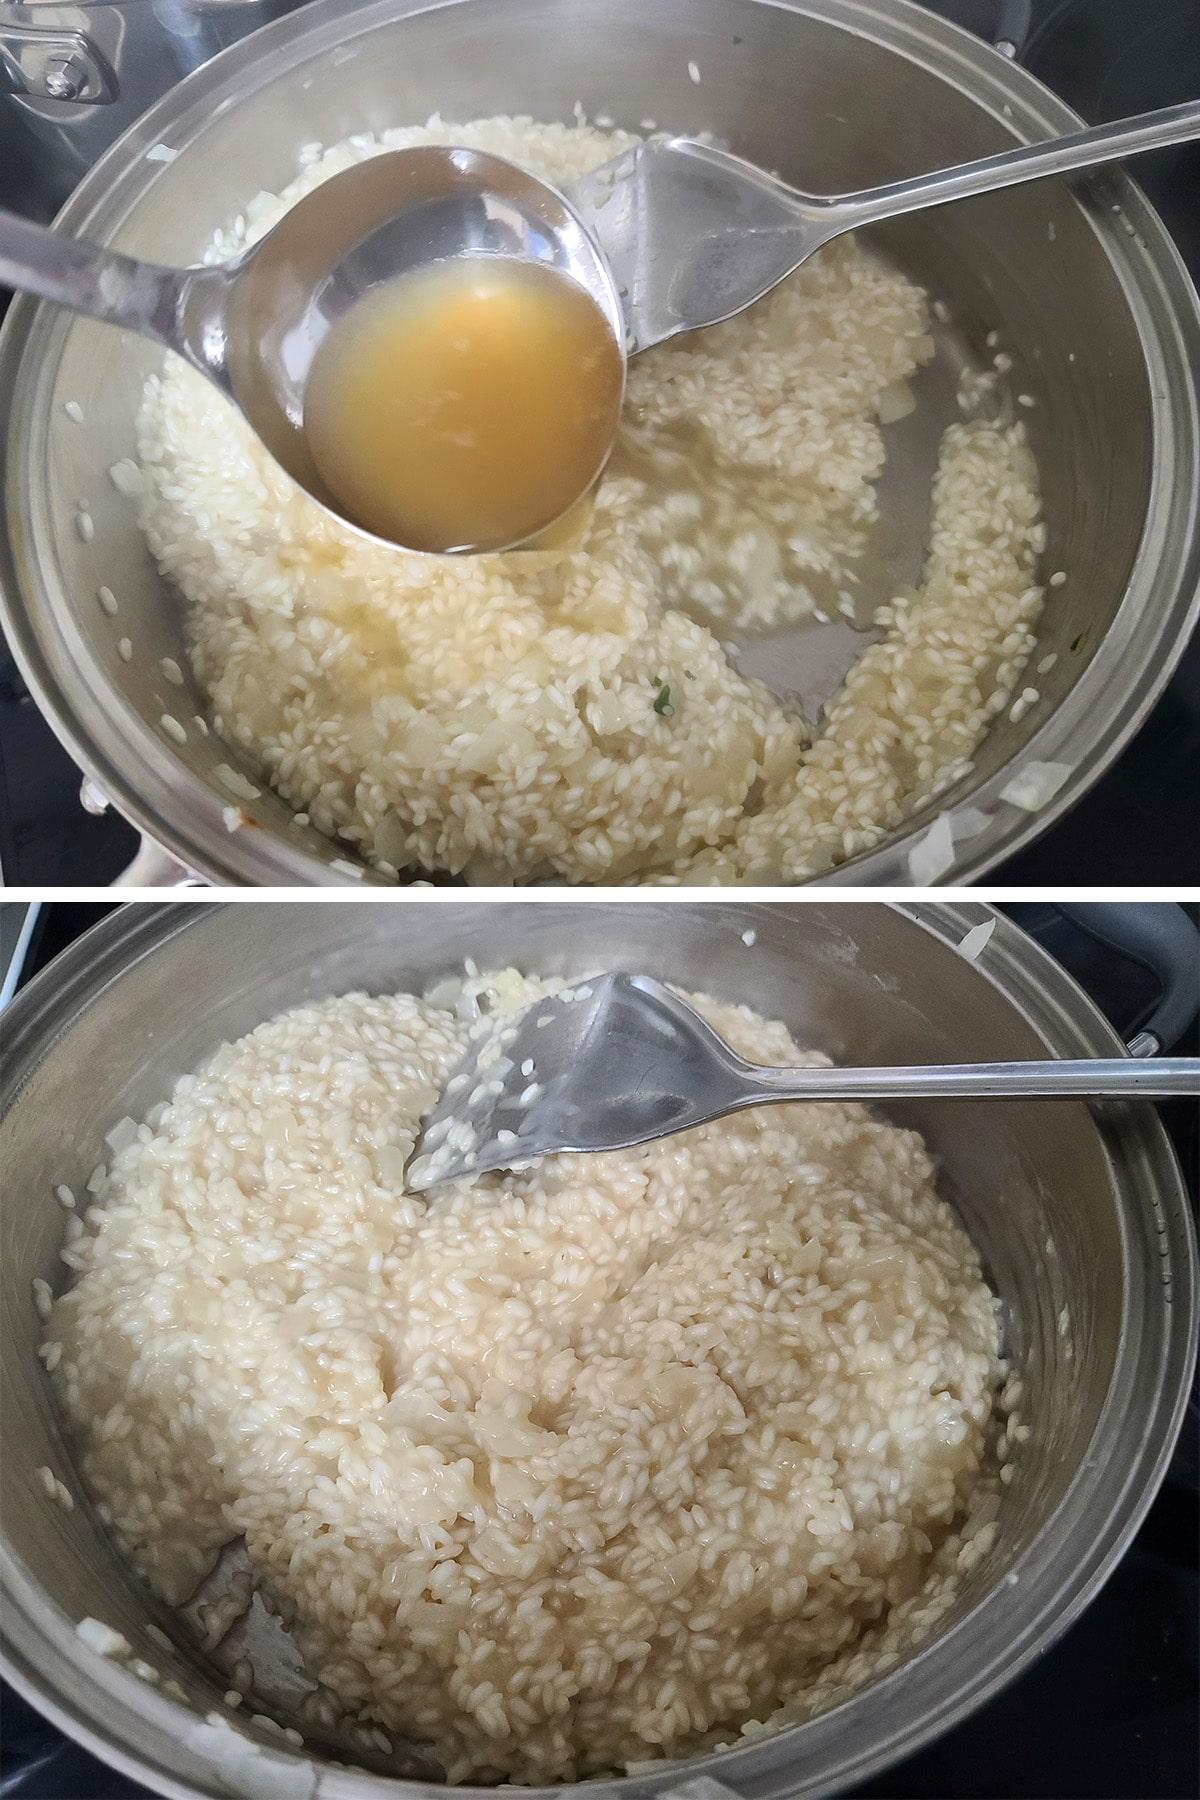 Rice and broth in a large metal pan, being stirred.